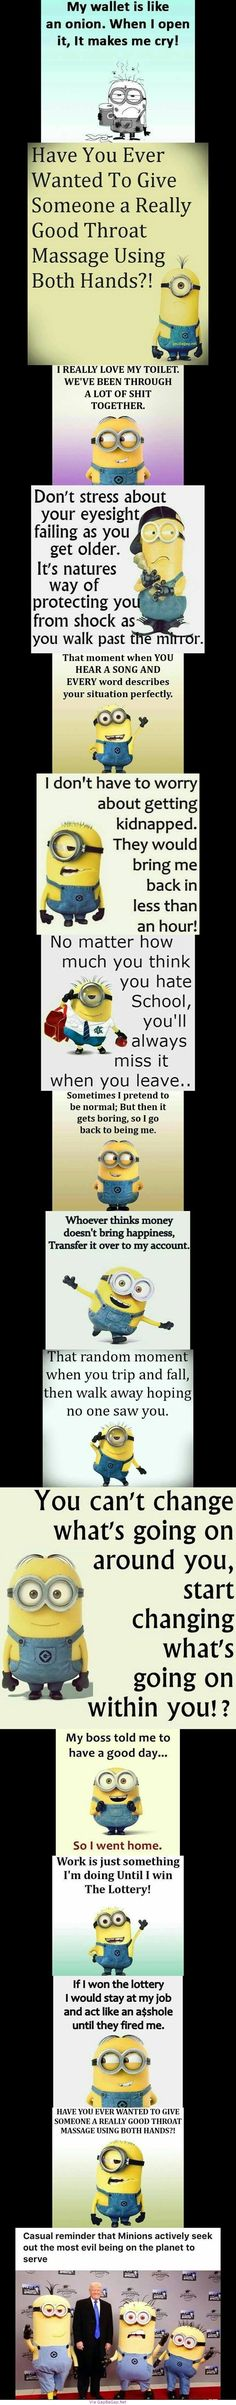 Top 15 Funniest Memes By The #Minions